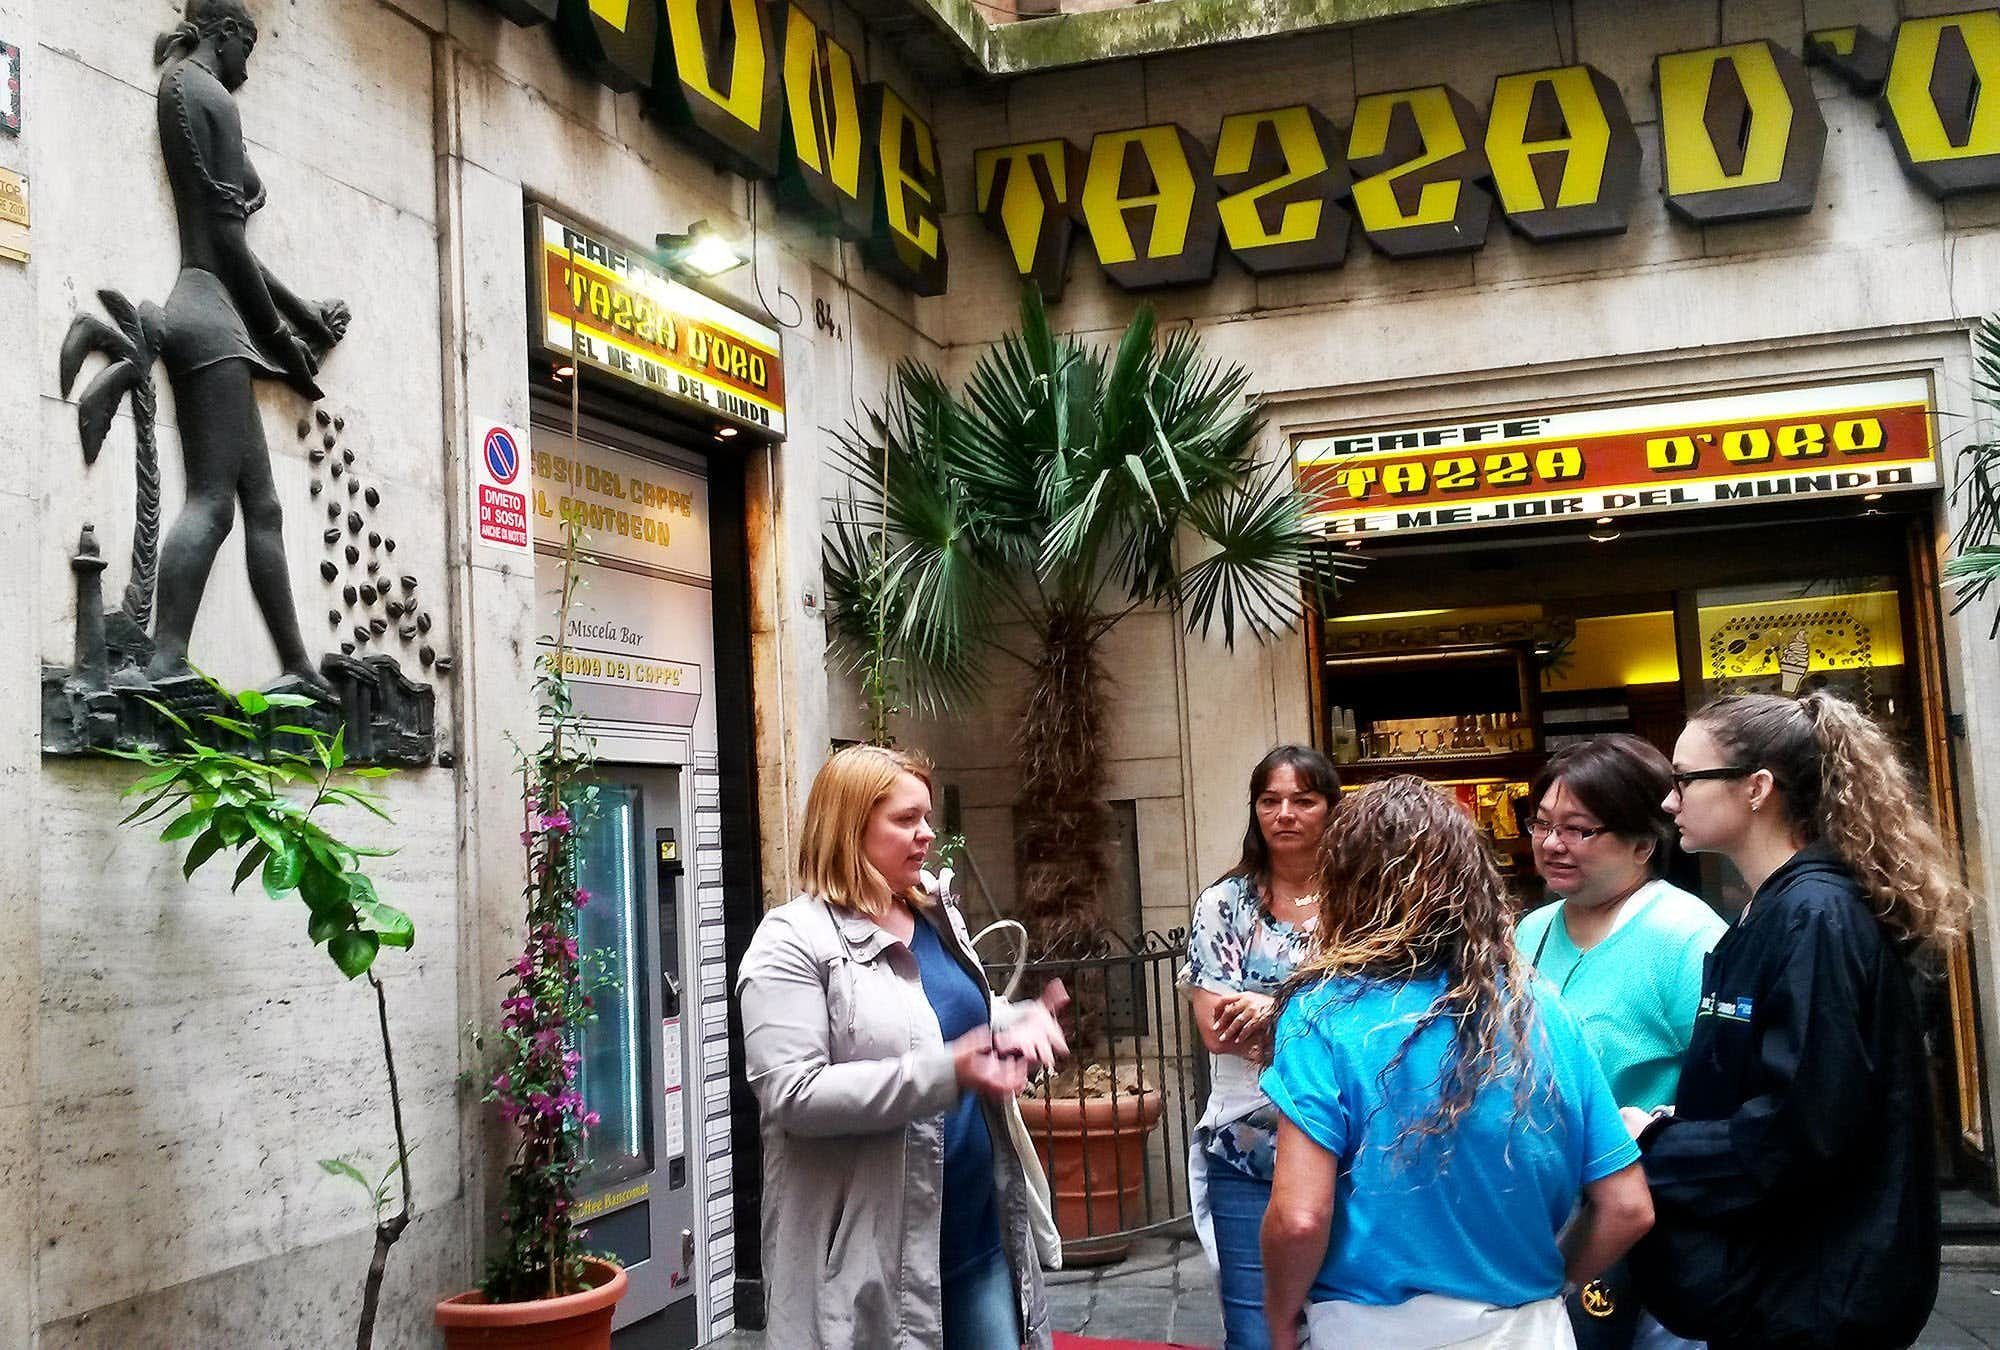 Rome Espresso and Desserts Food Crawl - Small Group Tour